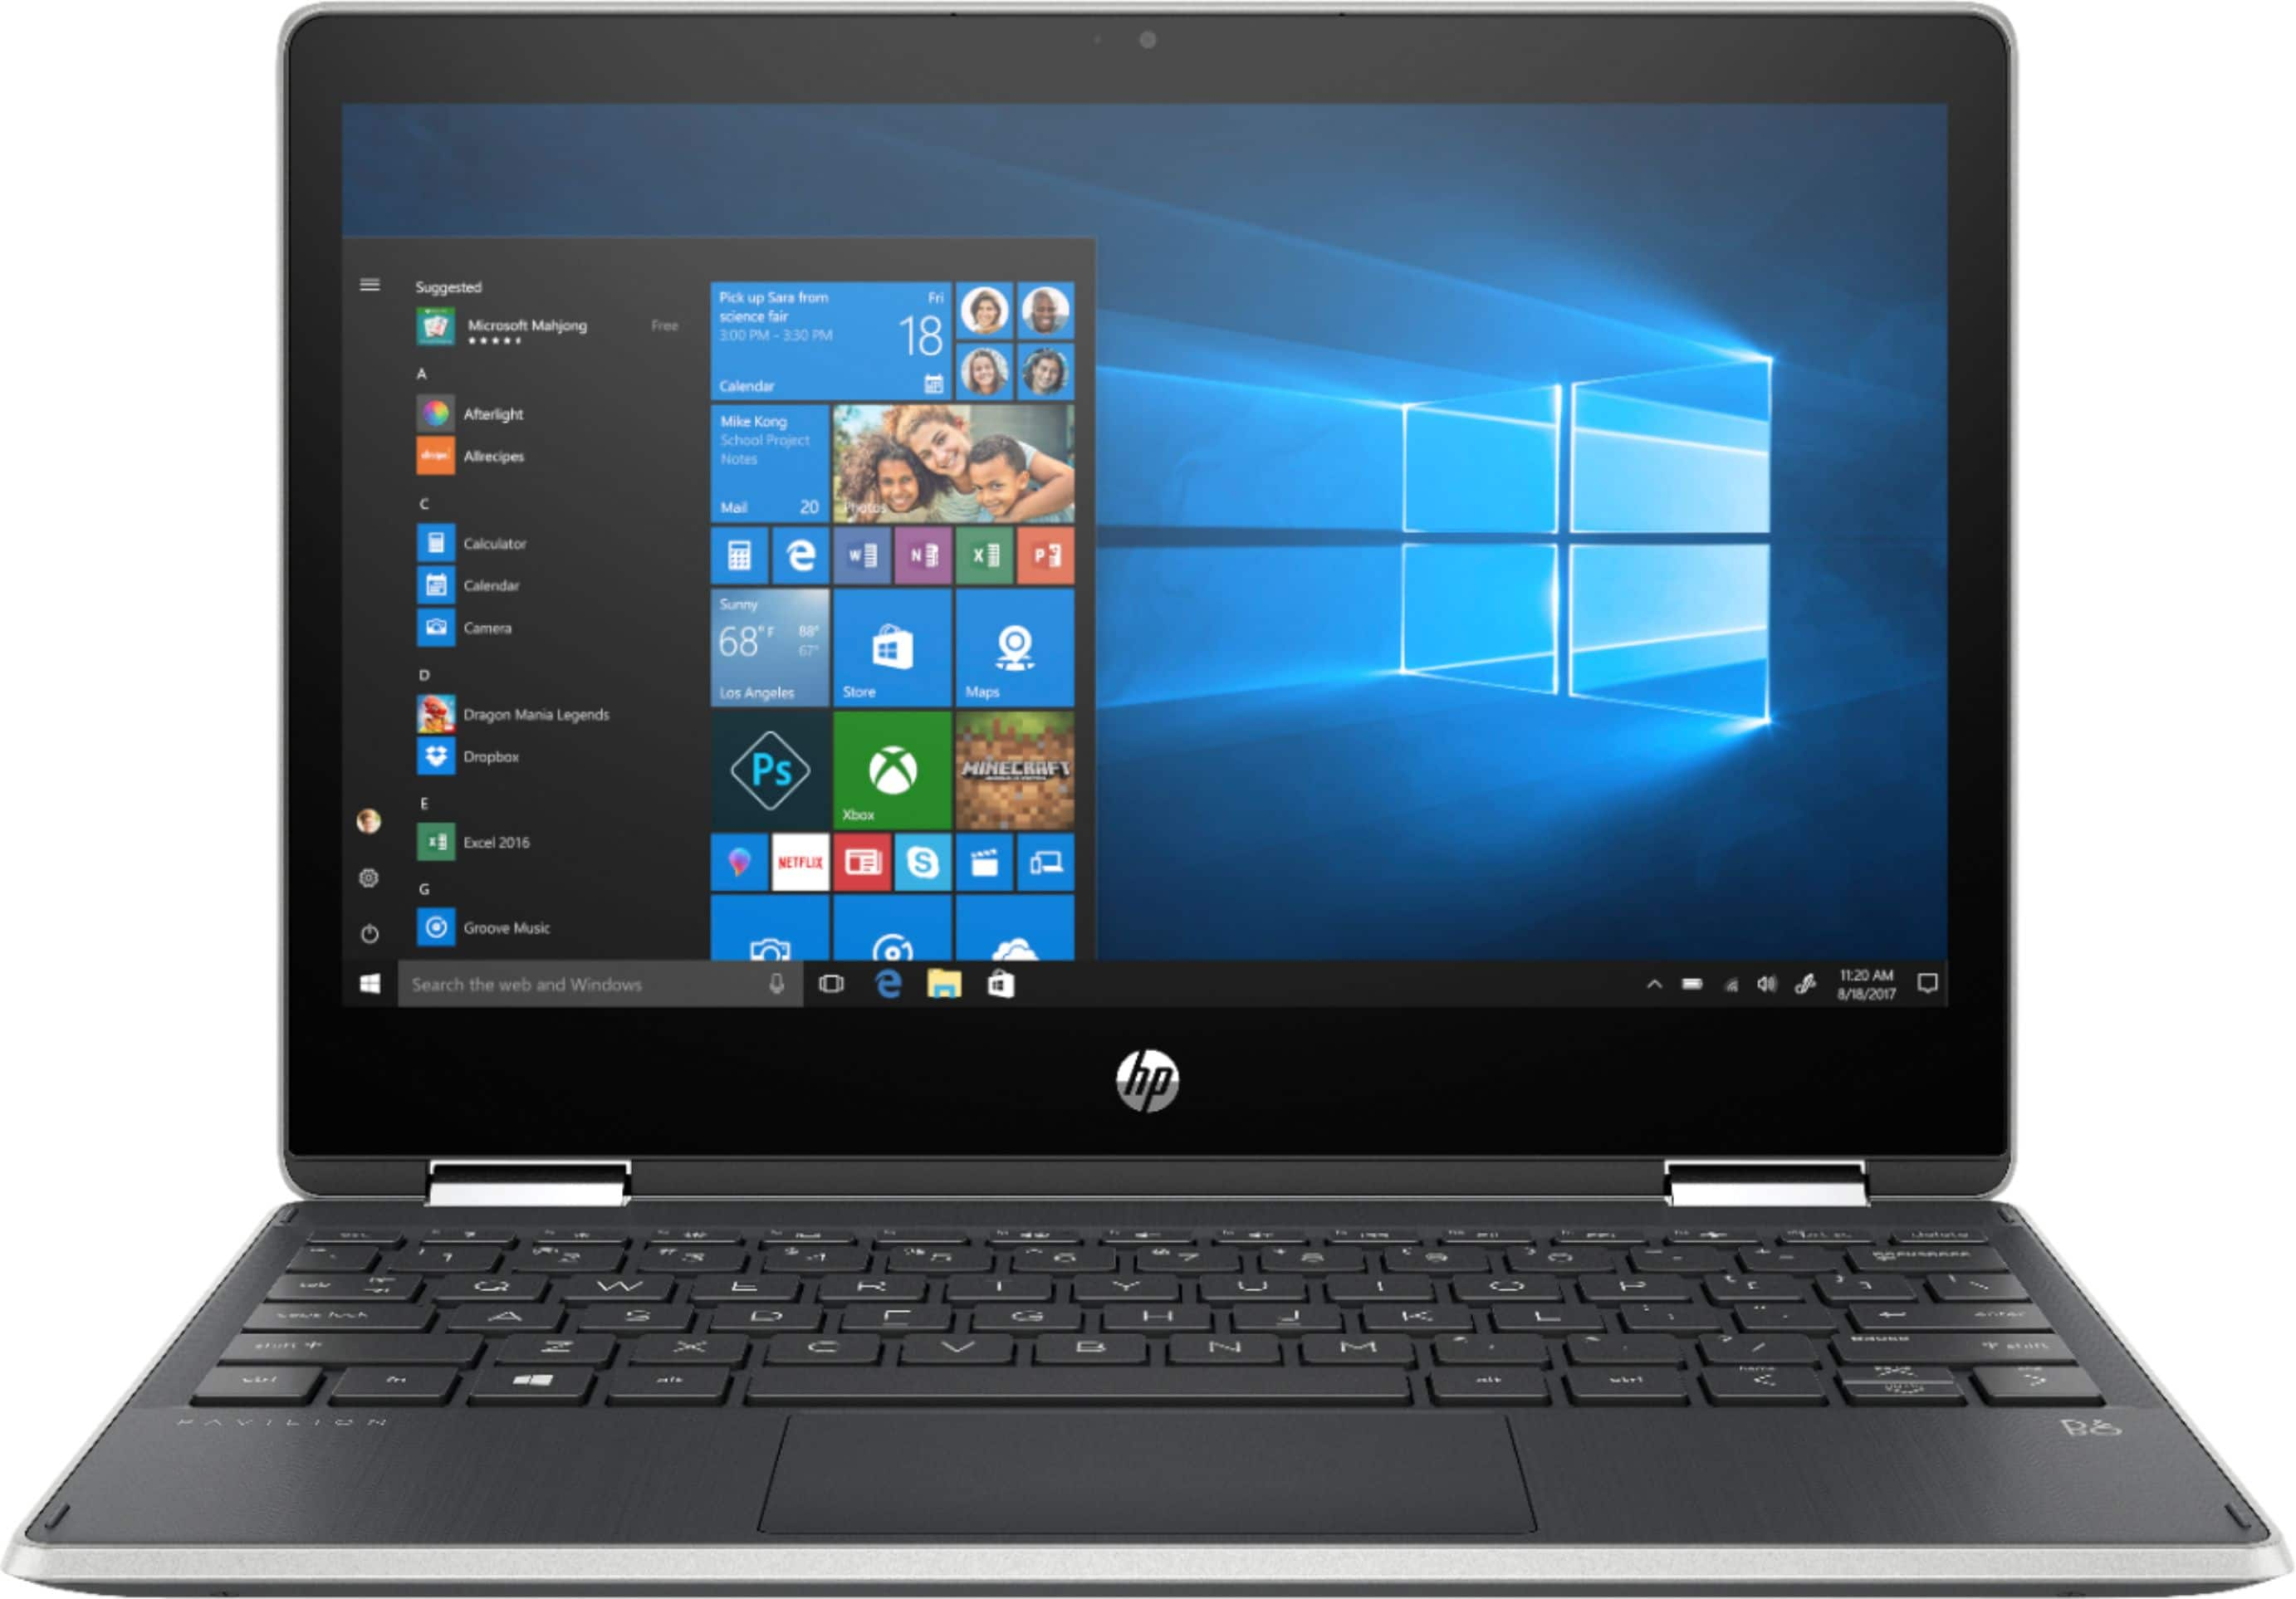 "HP - Pavilion x360 2-in-1 11.6"" Touch-Screen Laptop - Intel Pentium - 4GB Memory - 128GB Solid State Drive - Ash Silver Keyboard Frame, Natural Silver $300"